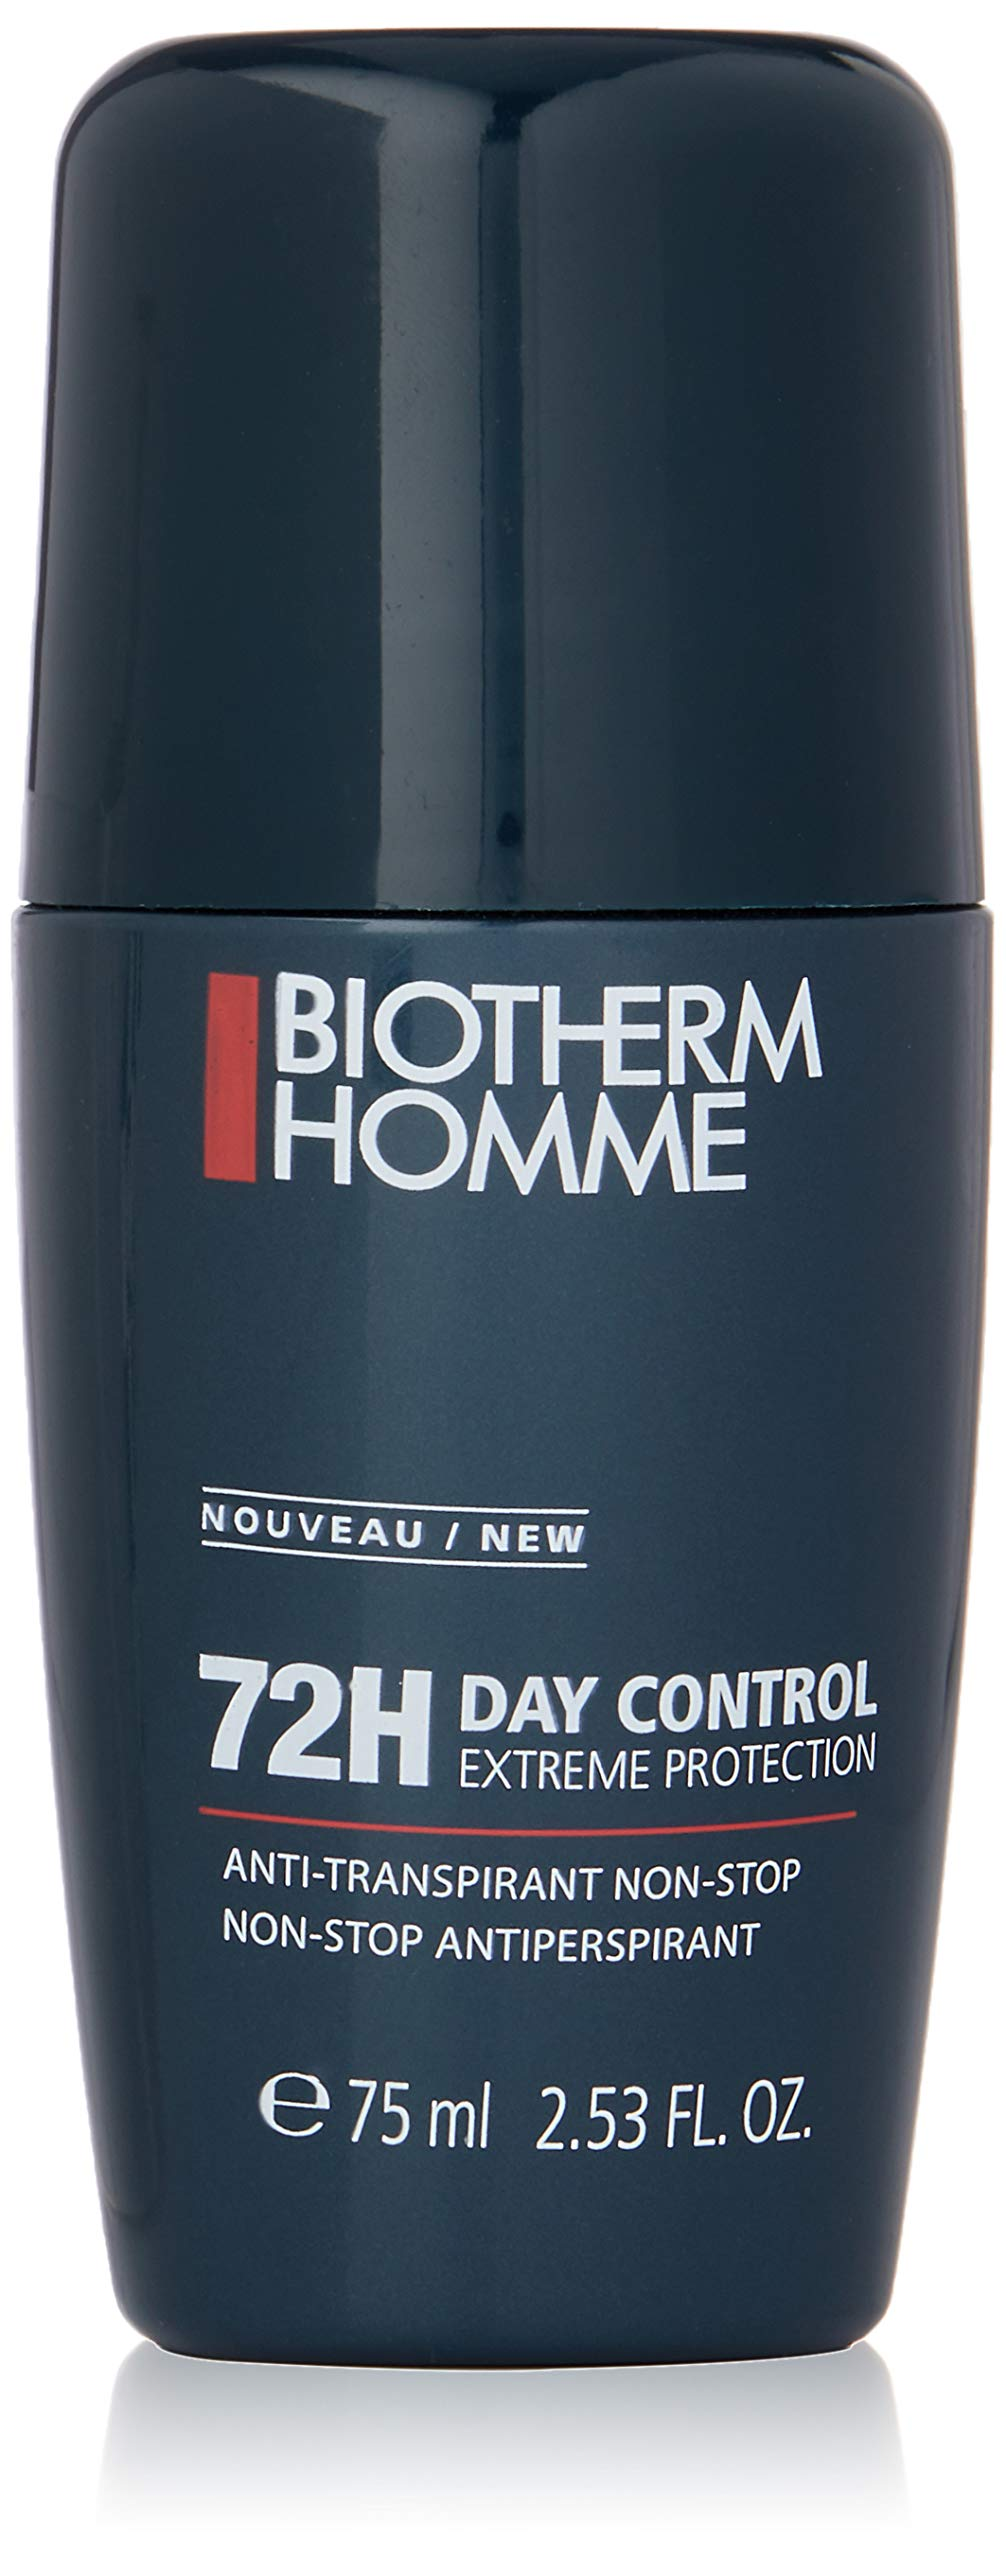 Biotherm Homme Day Control Deo Anti-perspirant Roll-on 72h Extreme Performance For Men-2.53 Oz.